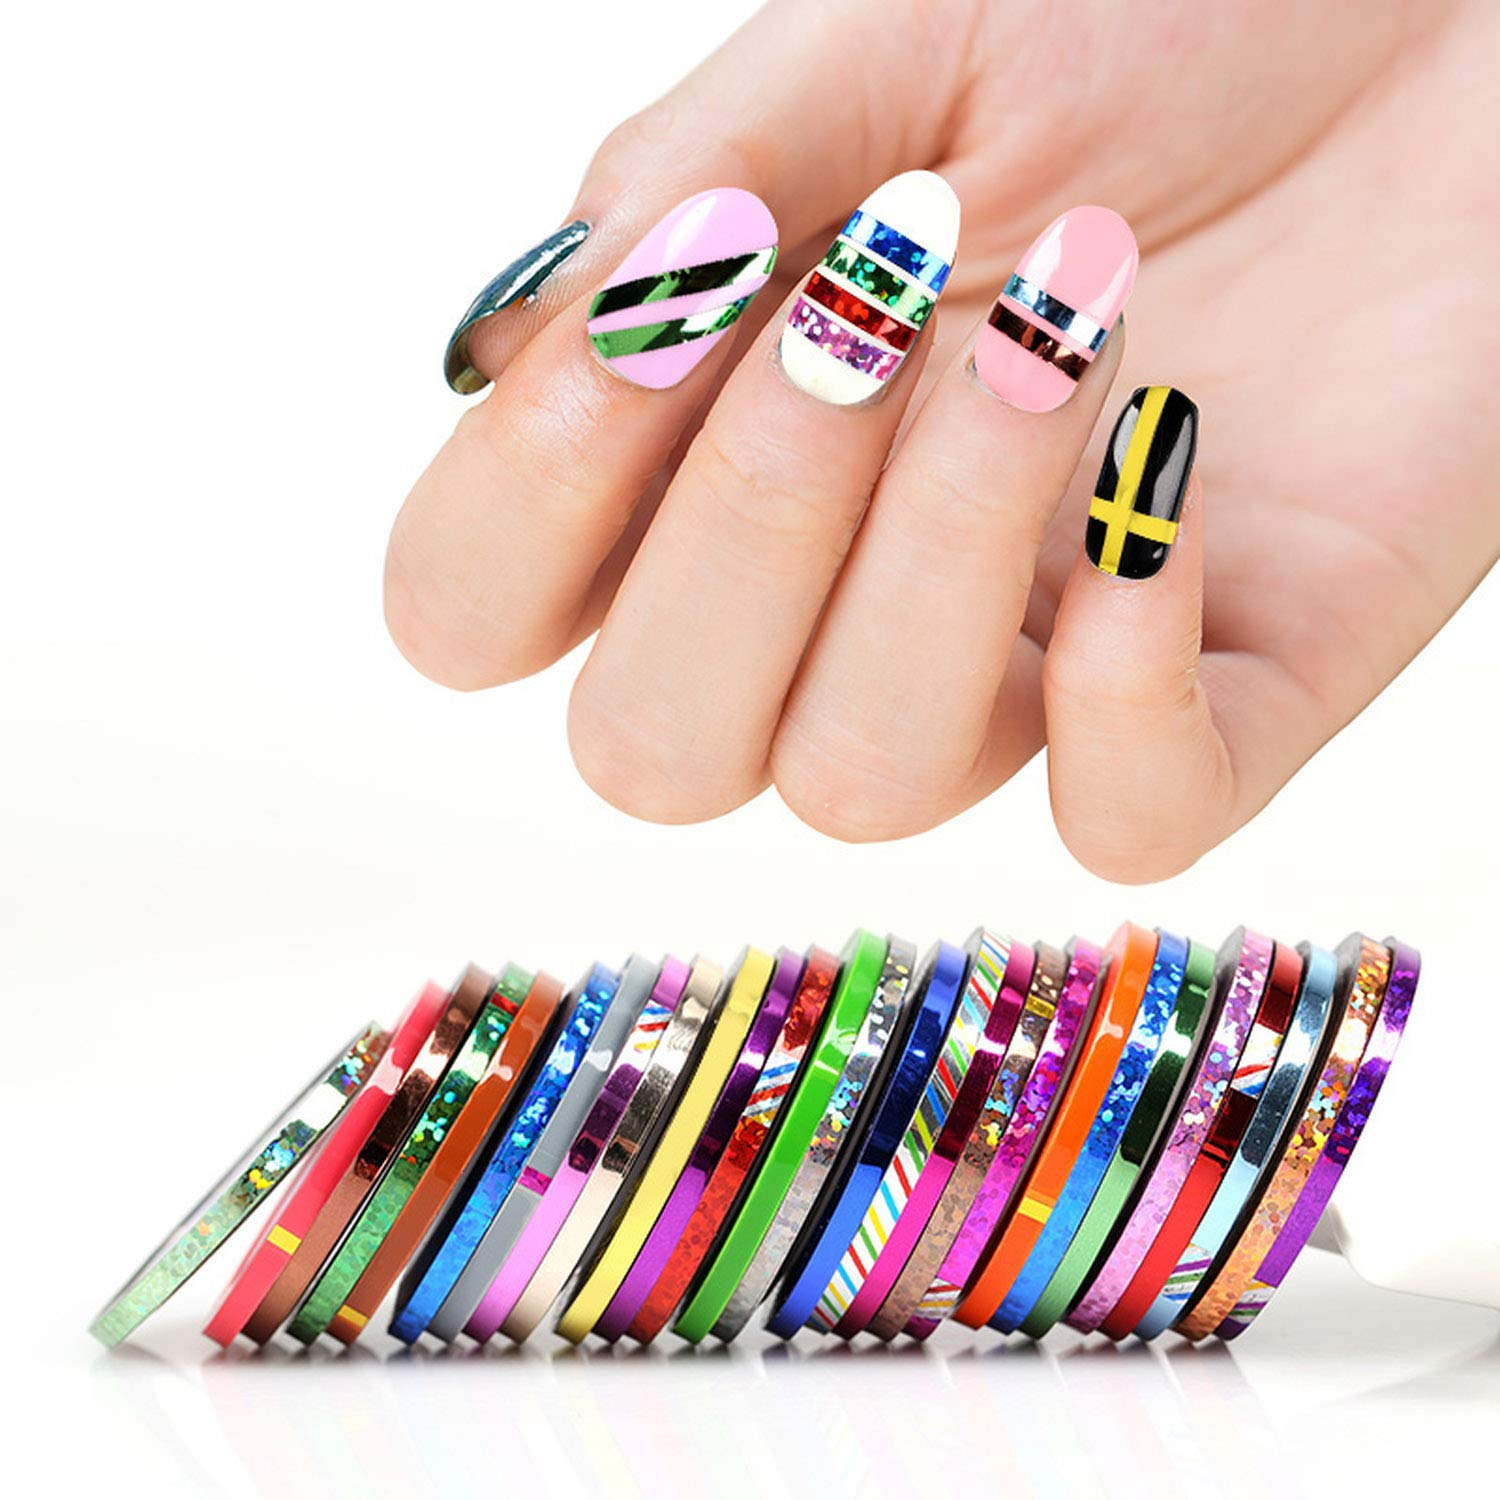 27 Pcs/Lot Mixed Colors 3Mm Nail Rolls Striping Tape Line Sticker Laser Shinning Sticker by ChicLadies